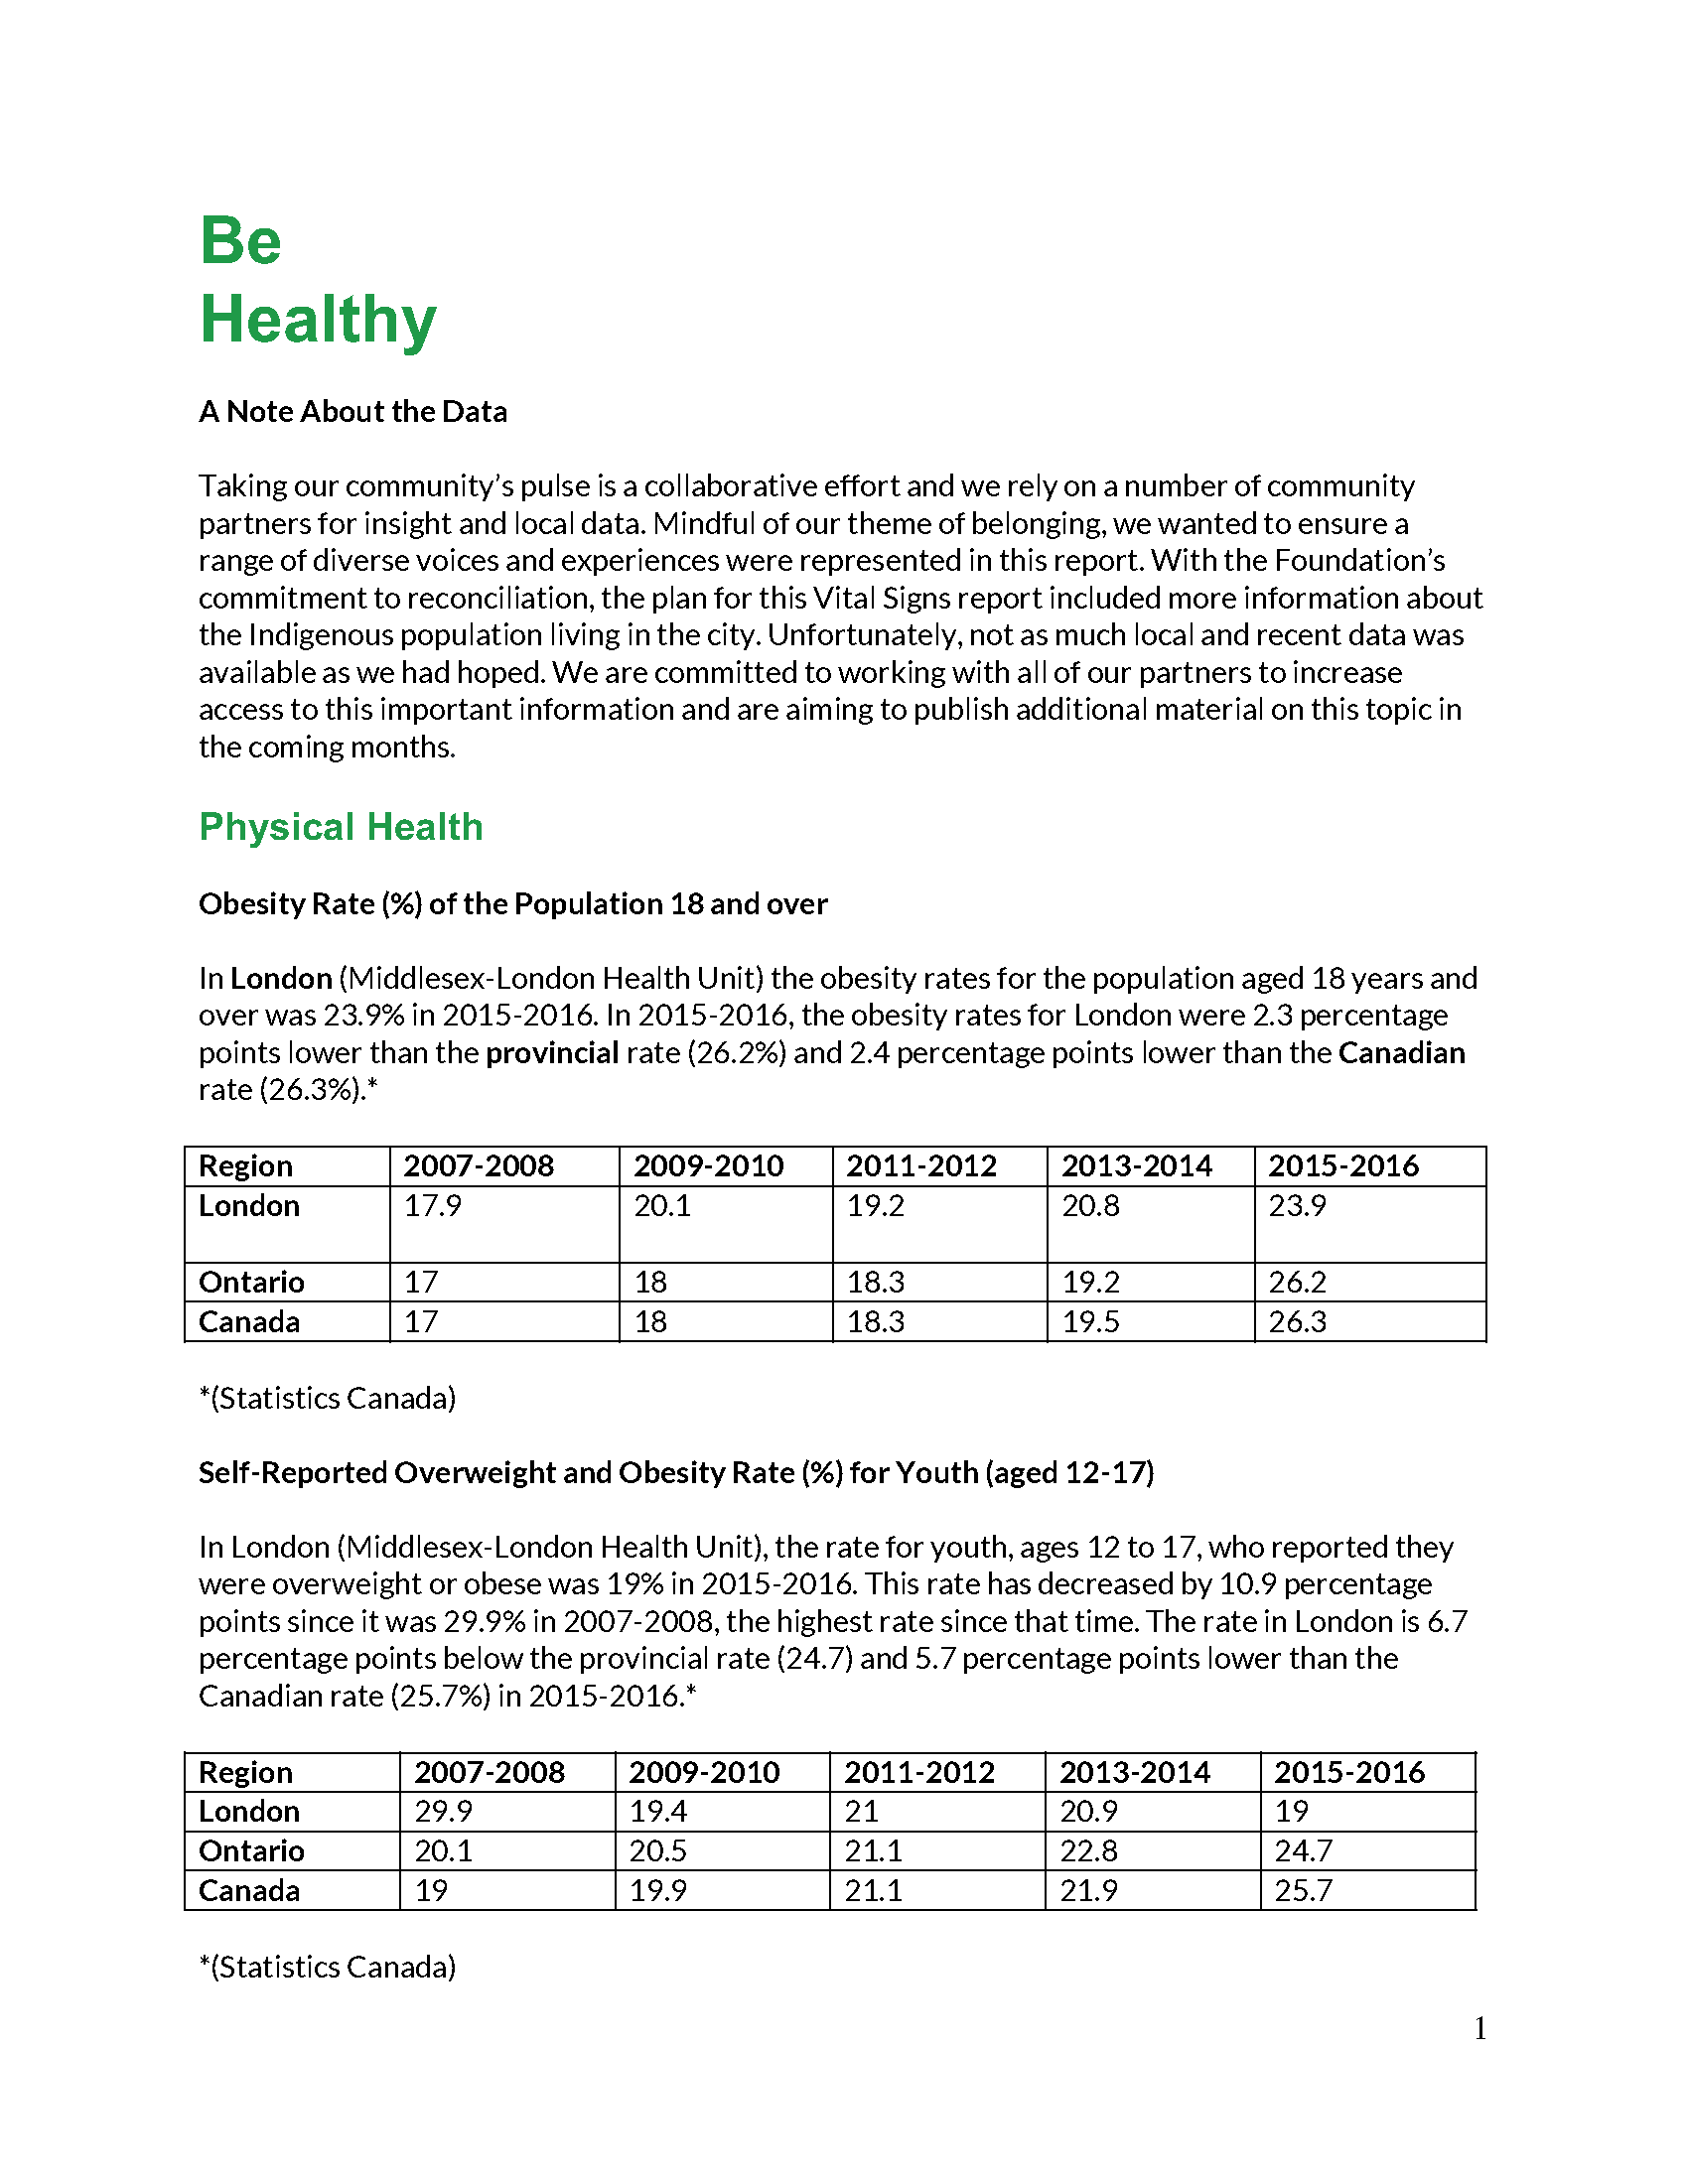 LCF-Vital Signs-Be Healthy_2.png